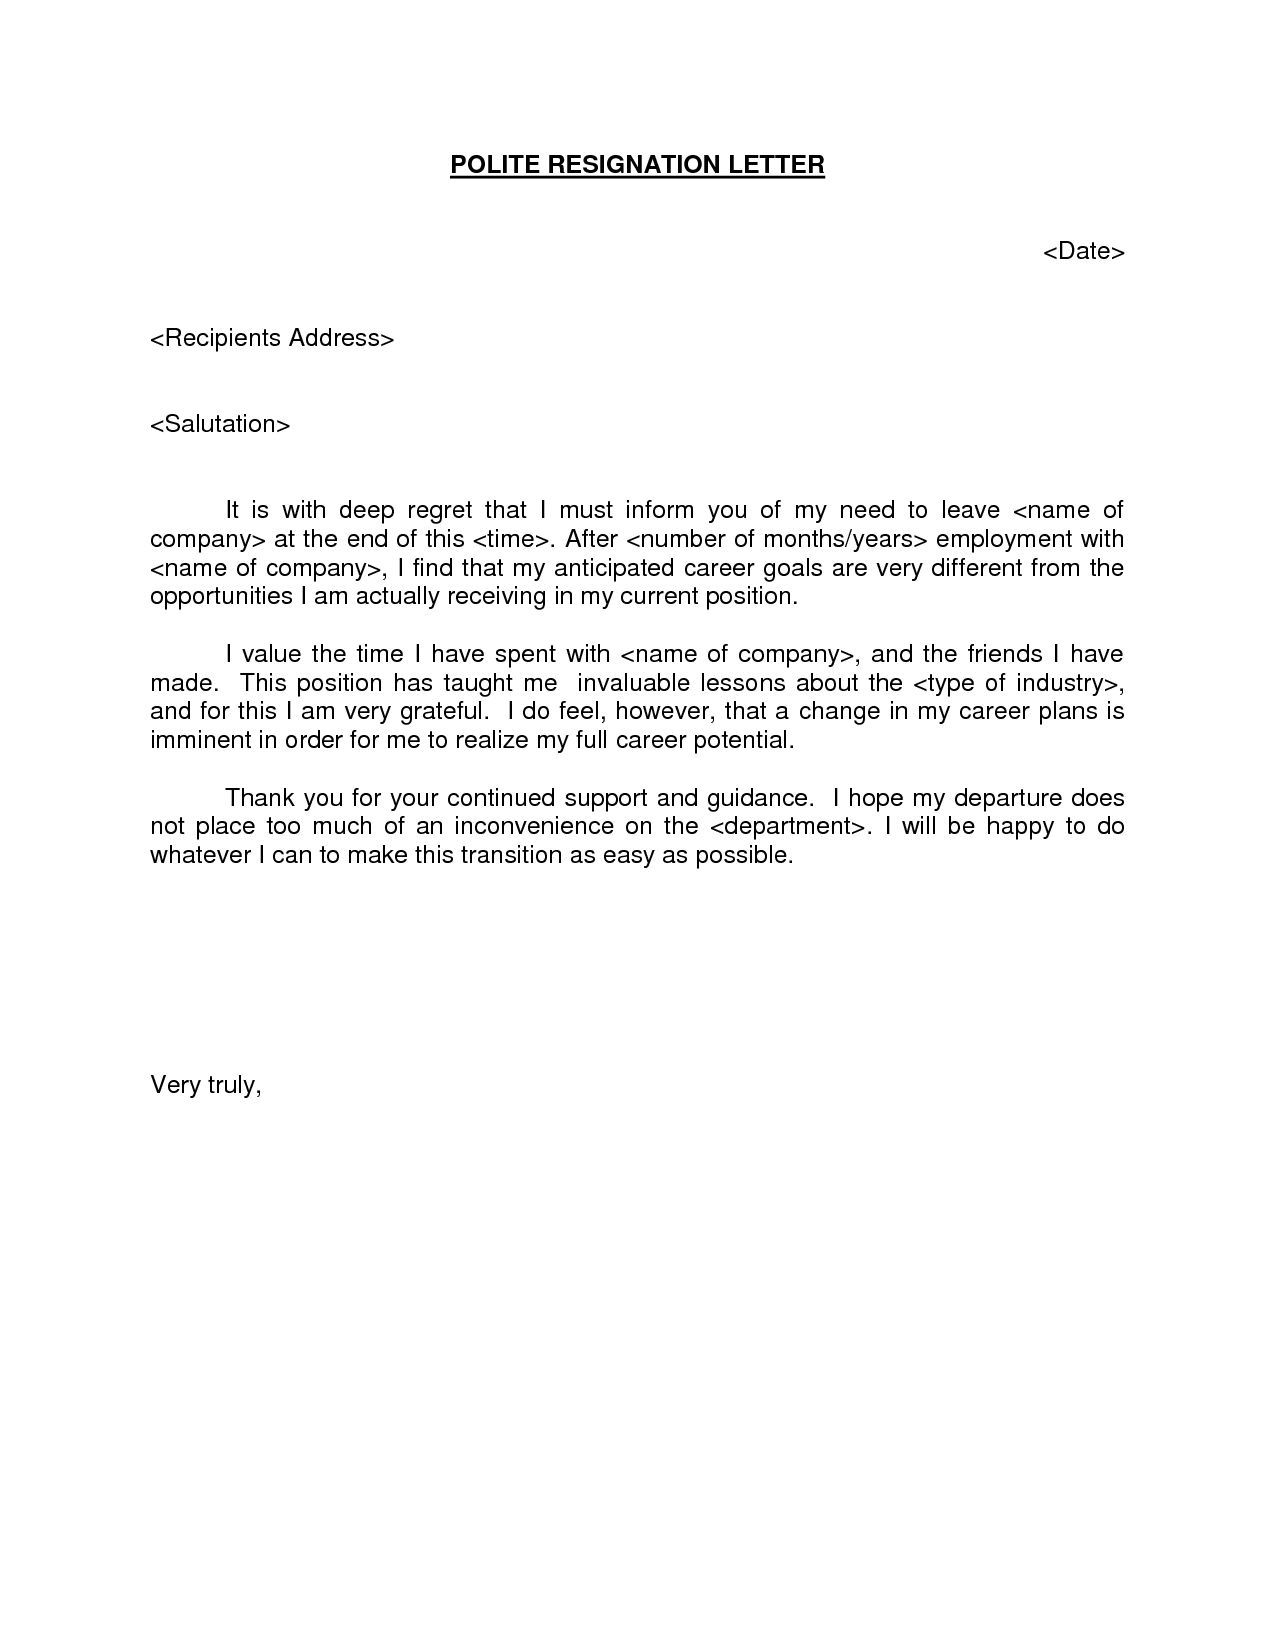 Company Vision Statement Examples In 2020 Resignation Letter Sample